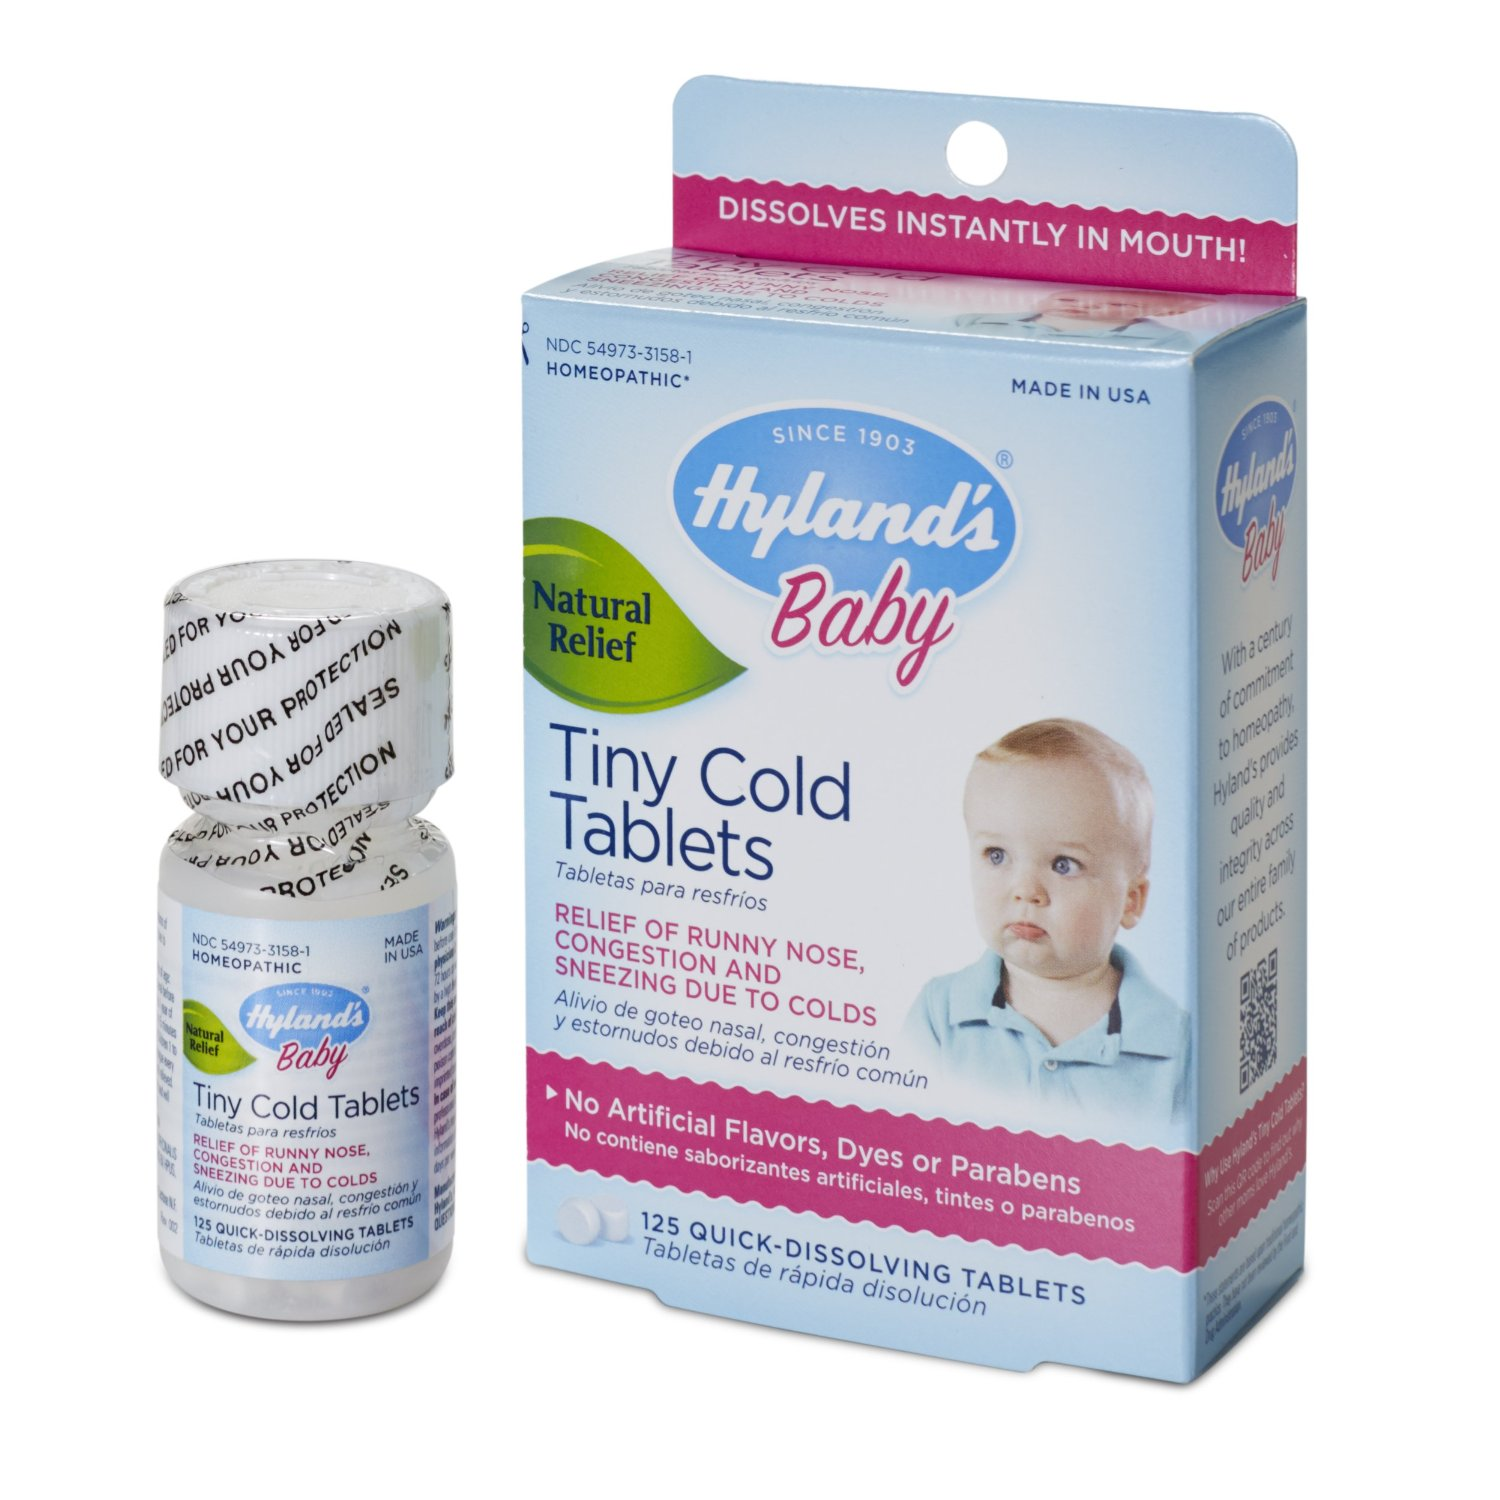 hylands-homeopathic-baby-tiny-cold-tablets-125-count